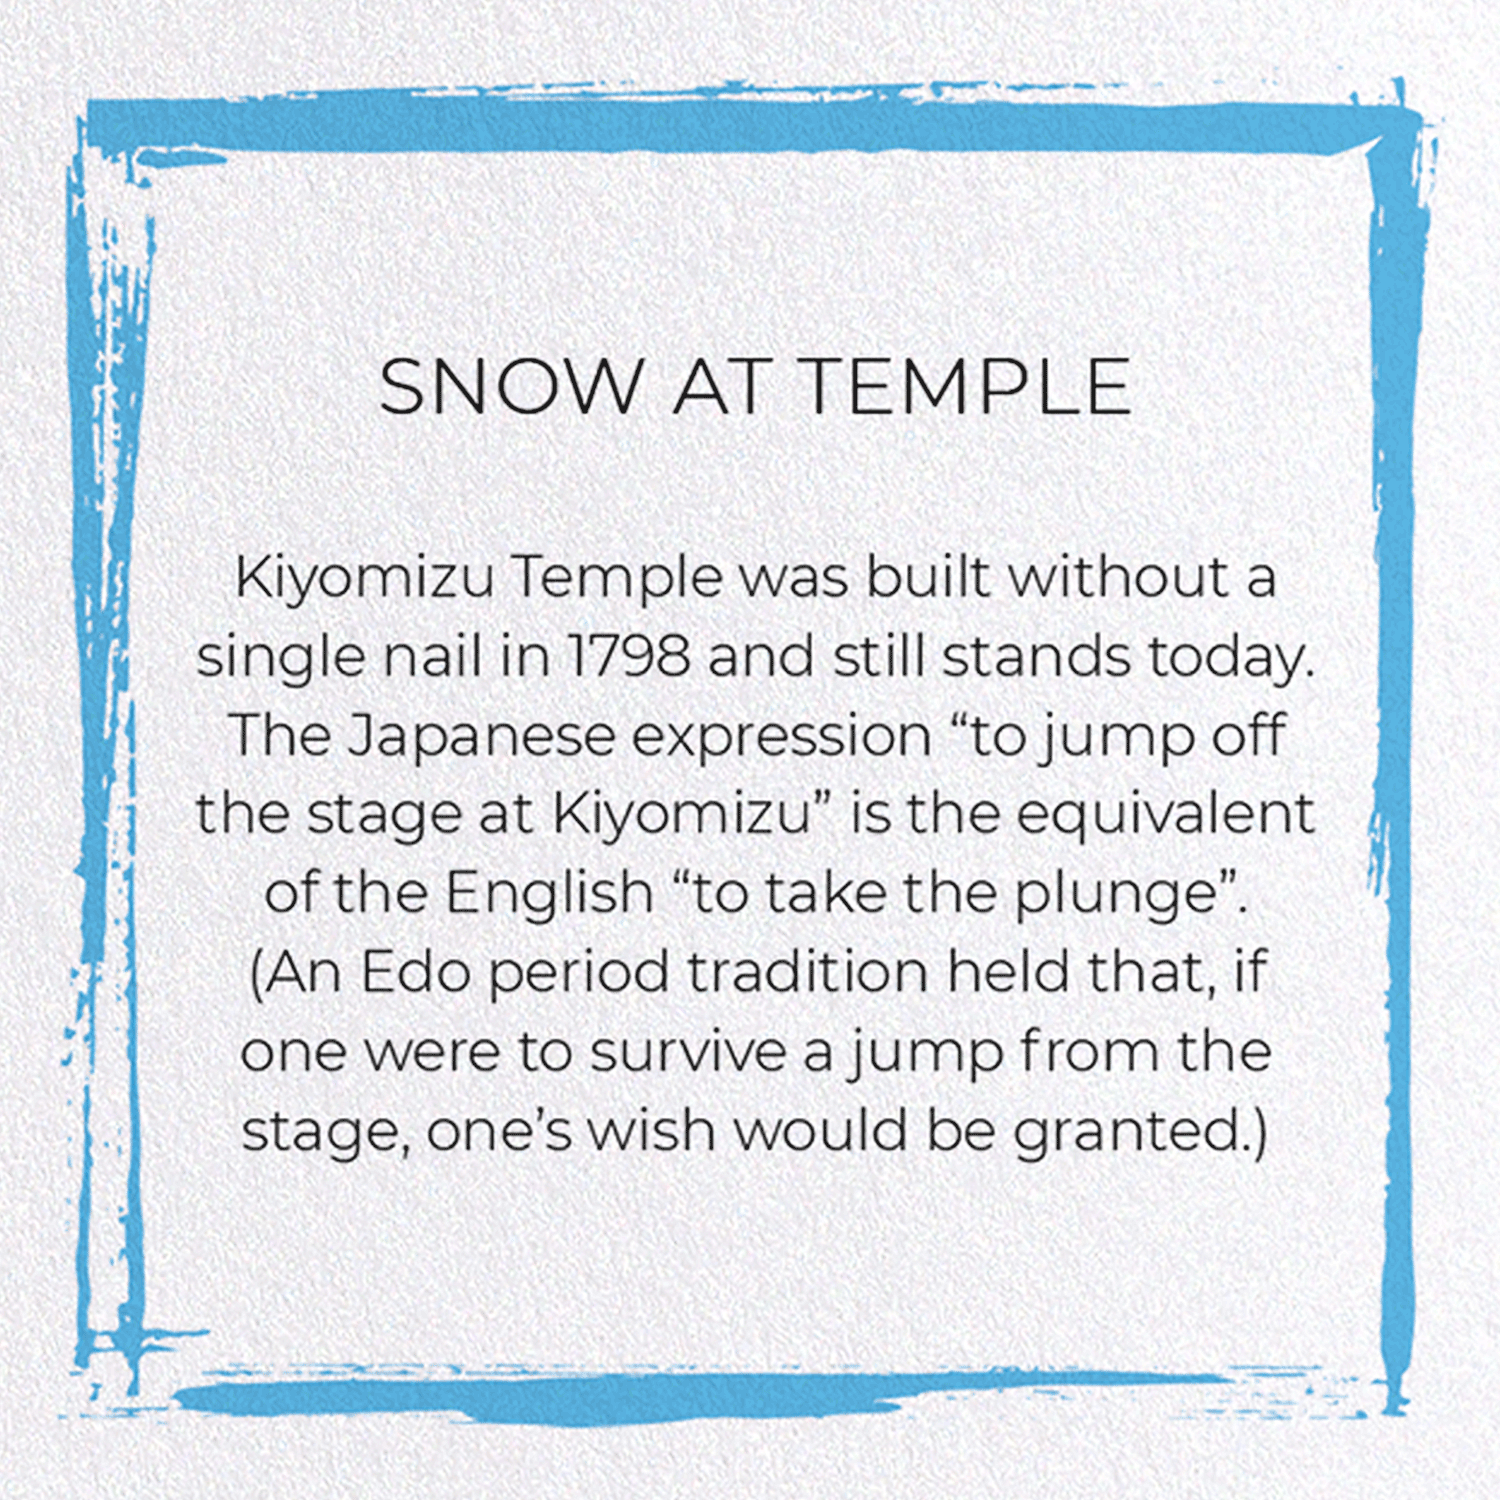 SNOW AT TEMPLE